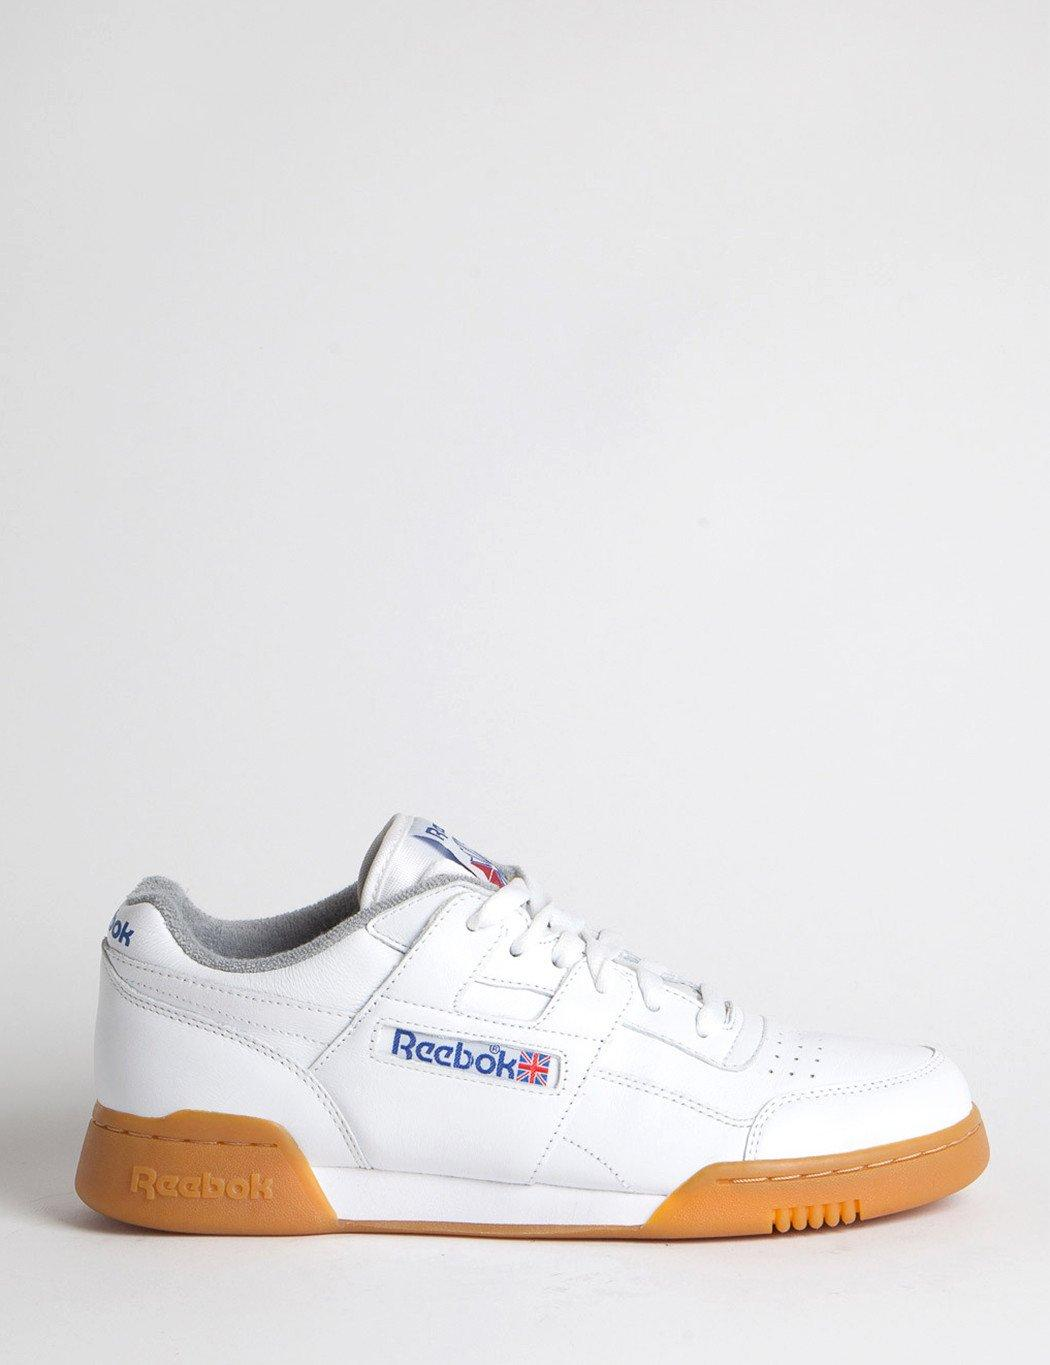 04d6f5a07976 Lyst - Reebok Workout Plus R12 Gum (m45031) in White for Men